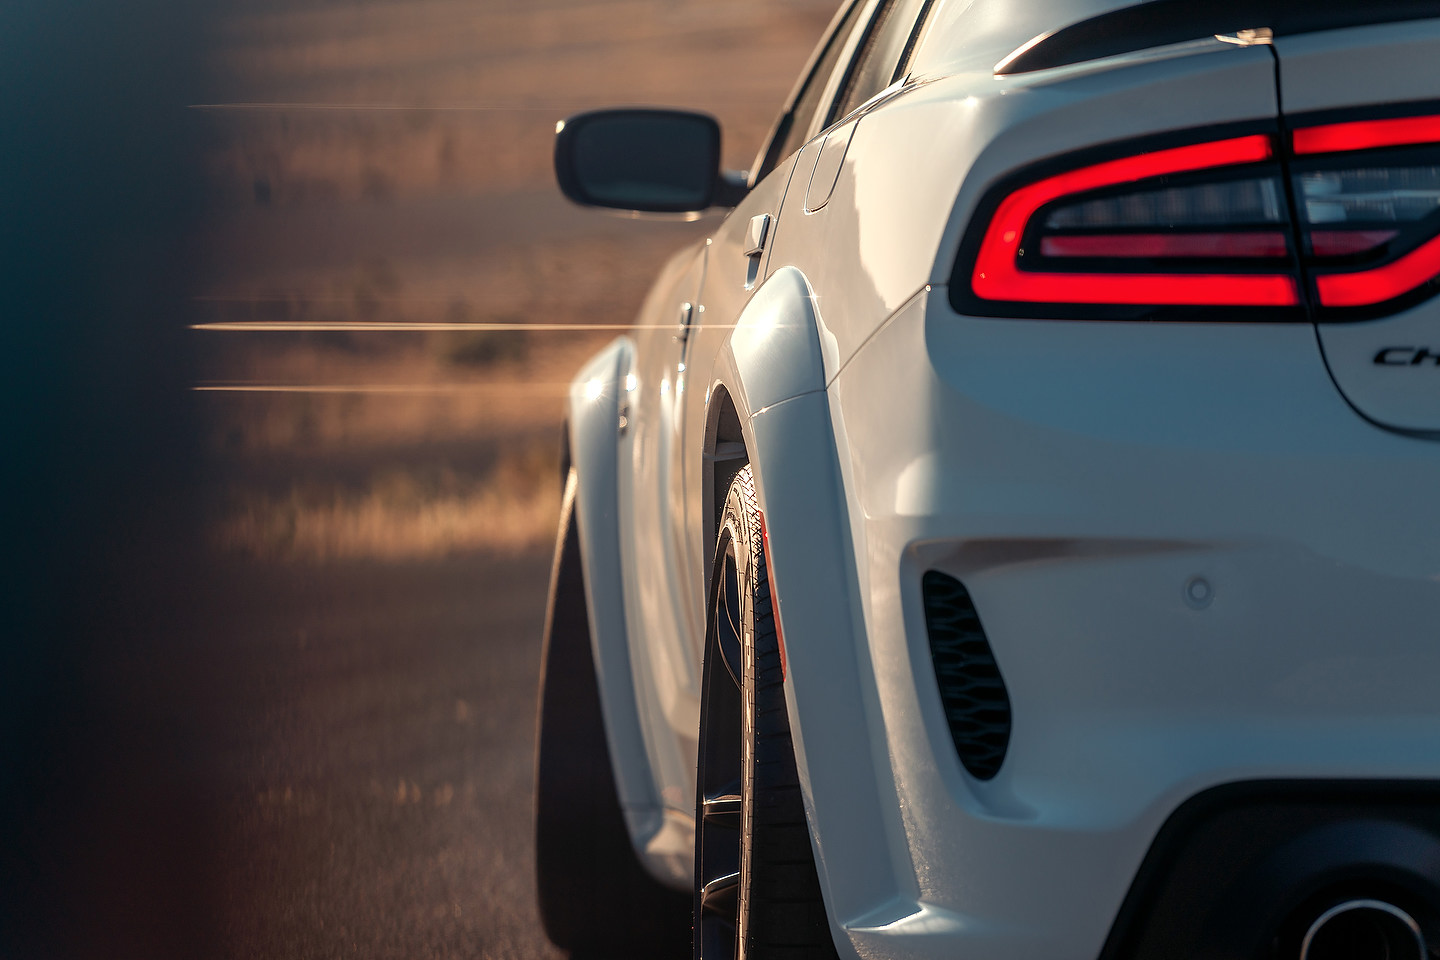 2020 Dodge Charger Scat Pack Widebody